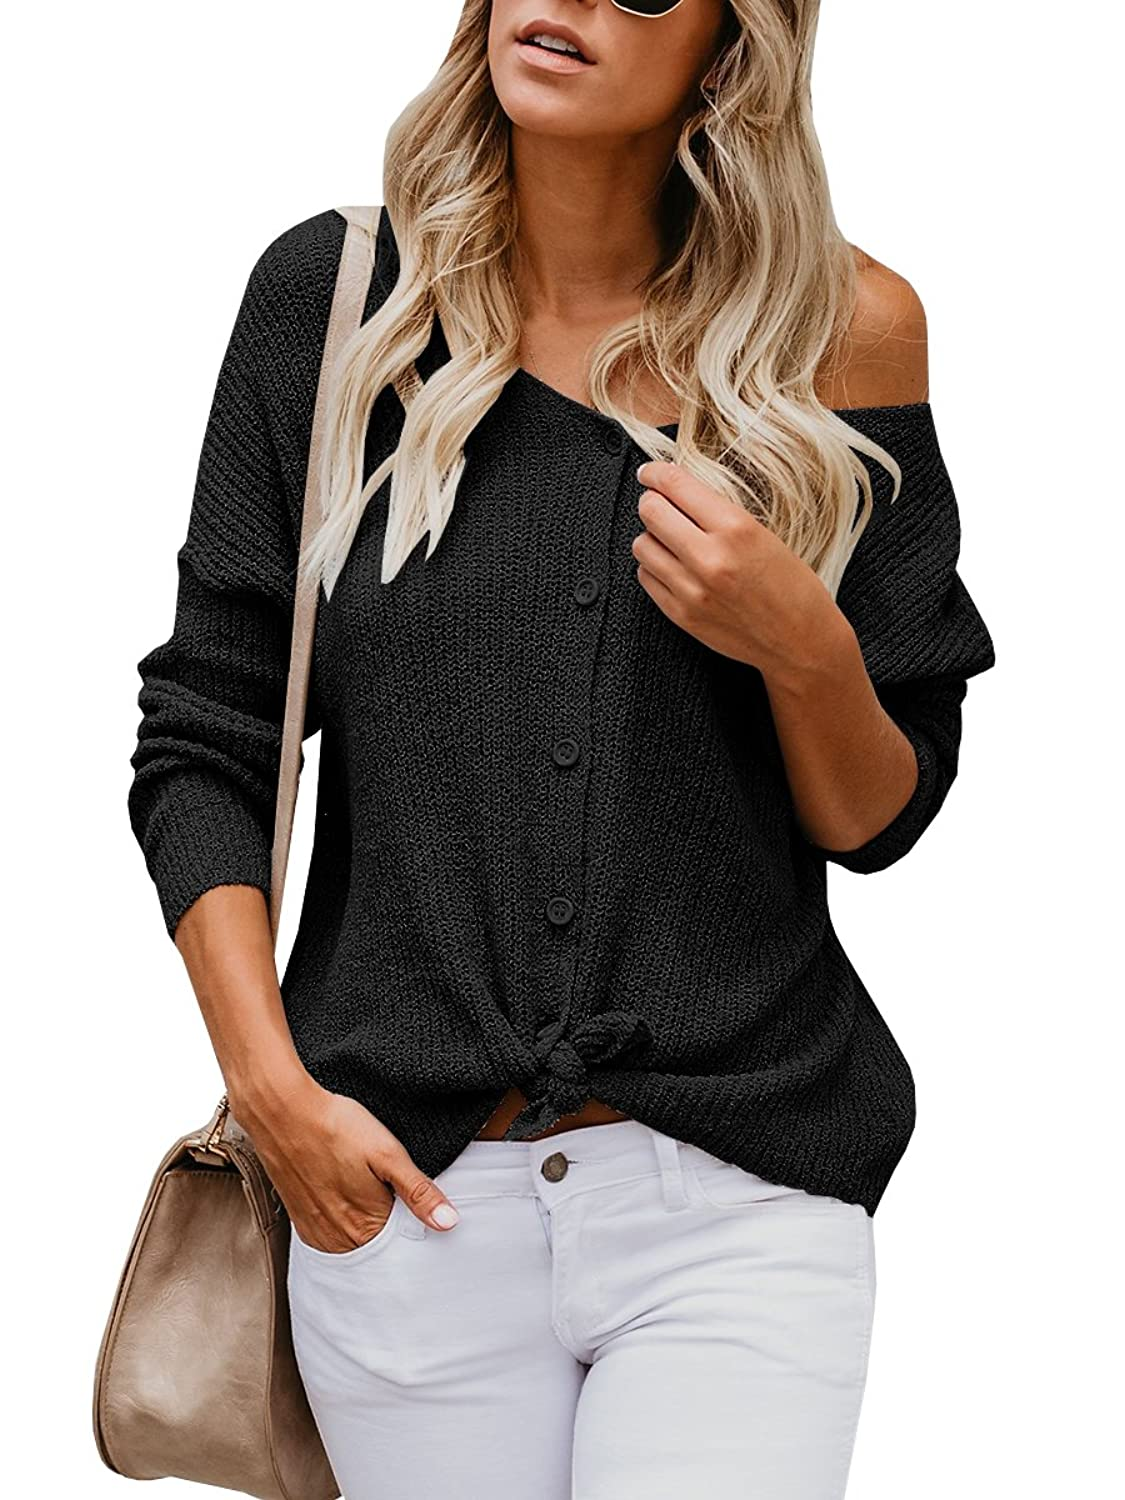 5a435d01072 Wear it tied at the bottom or untied!Button up the front shirts for women. Womens casual crew neck long sleeve spring fall knitwear tops.